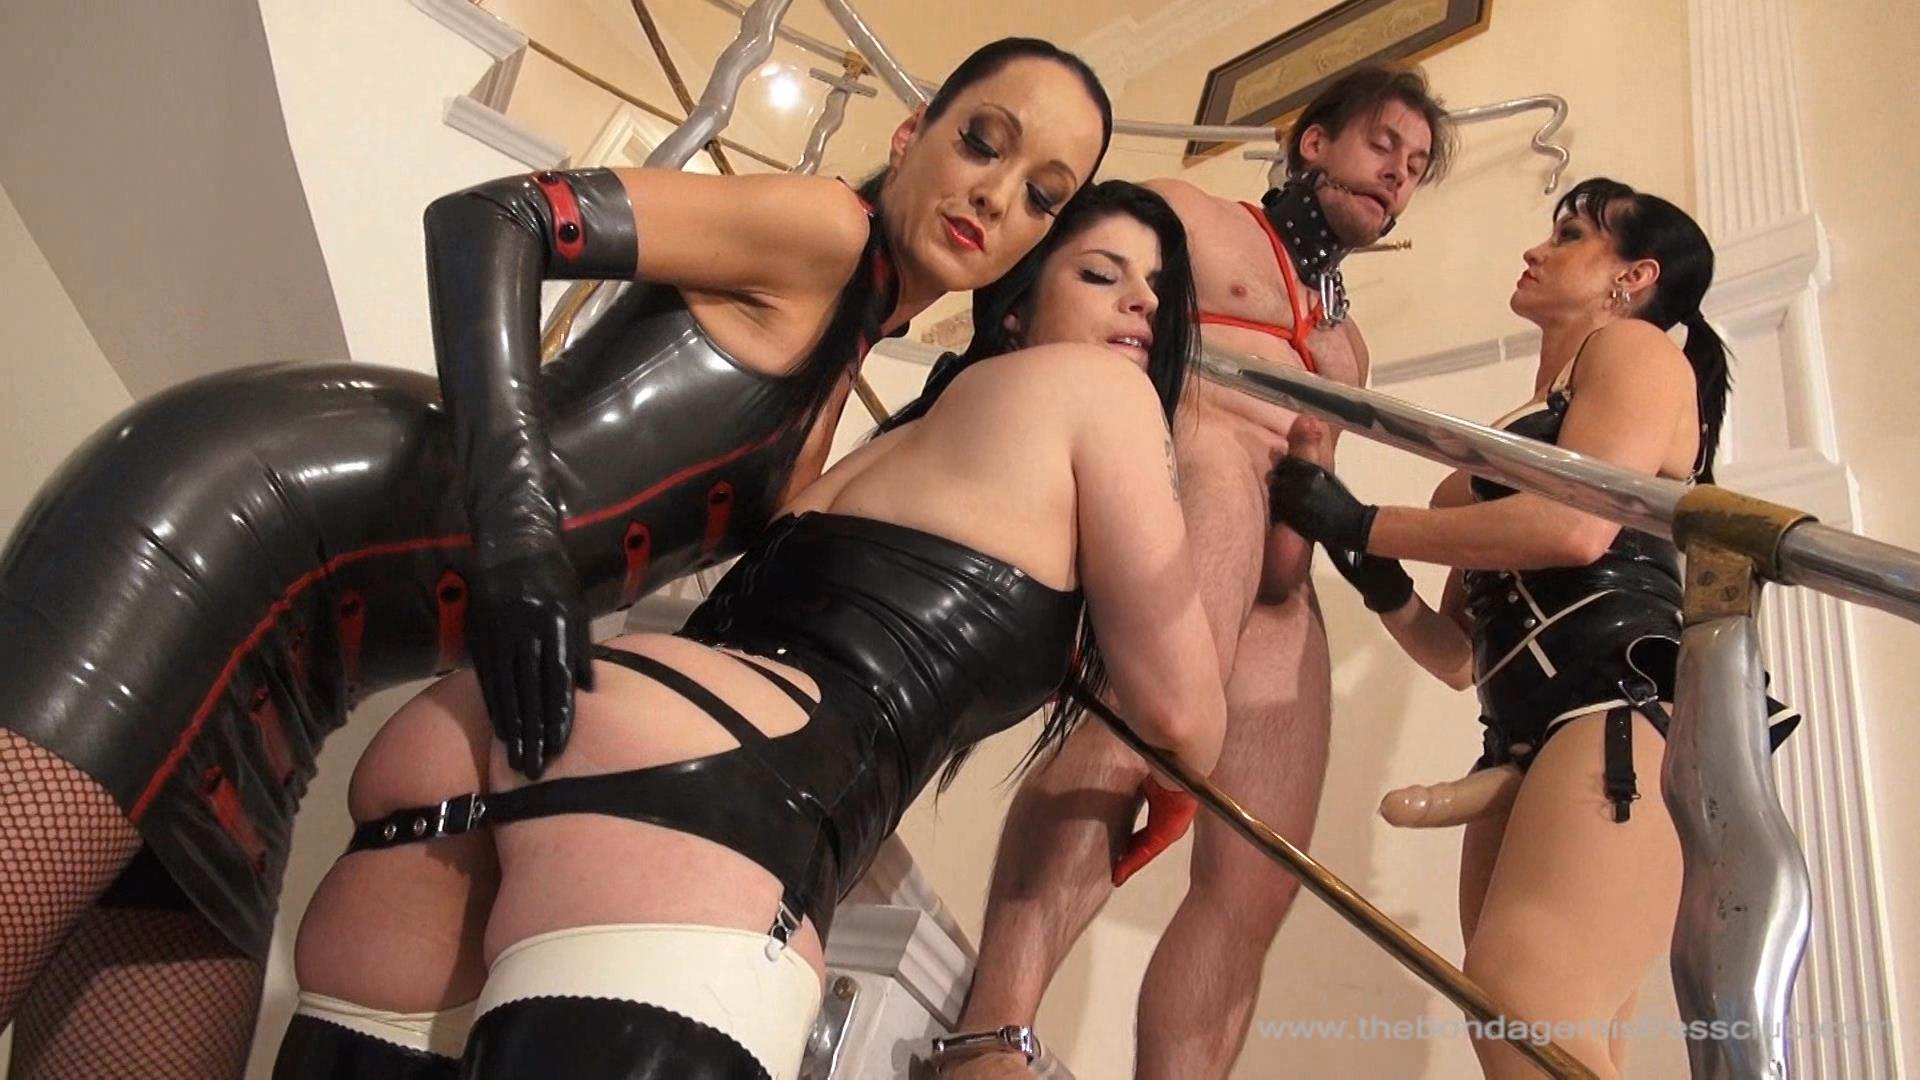 bdsm-fetish-foto